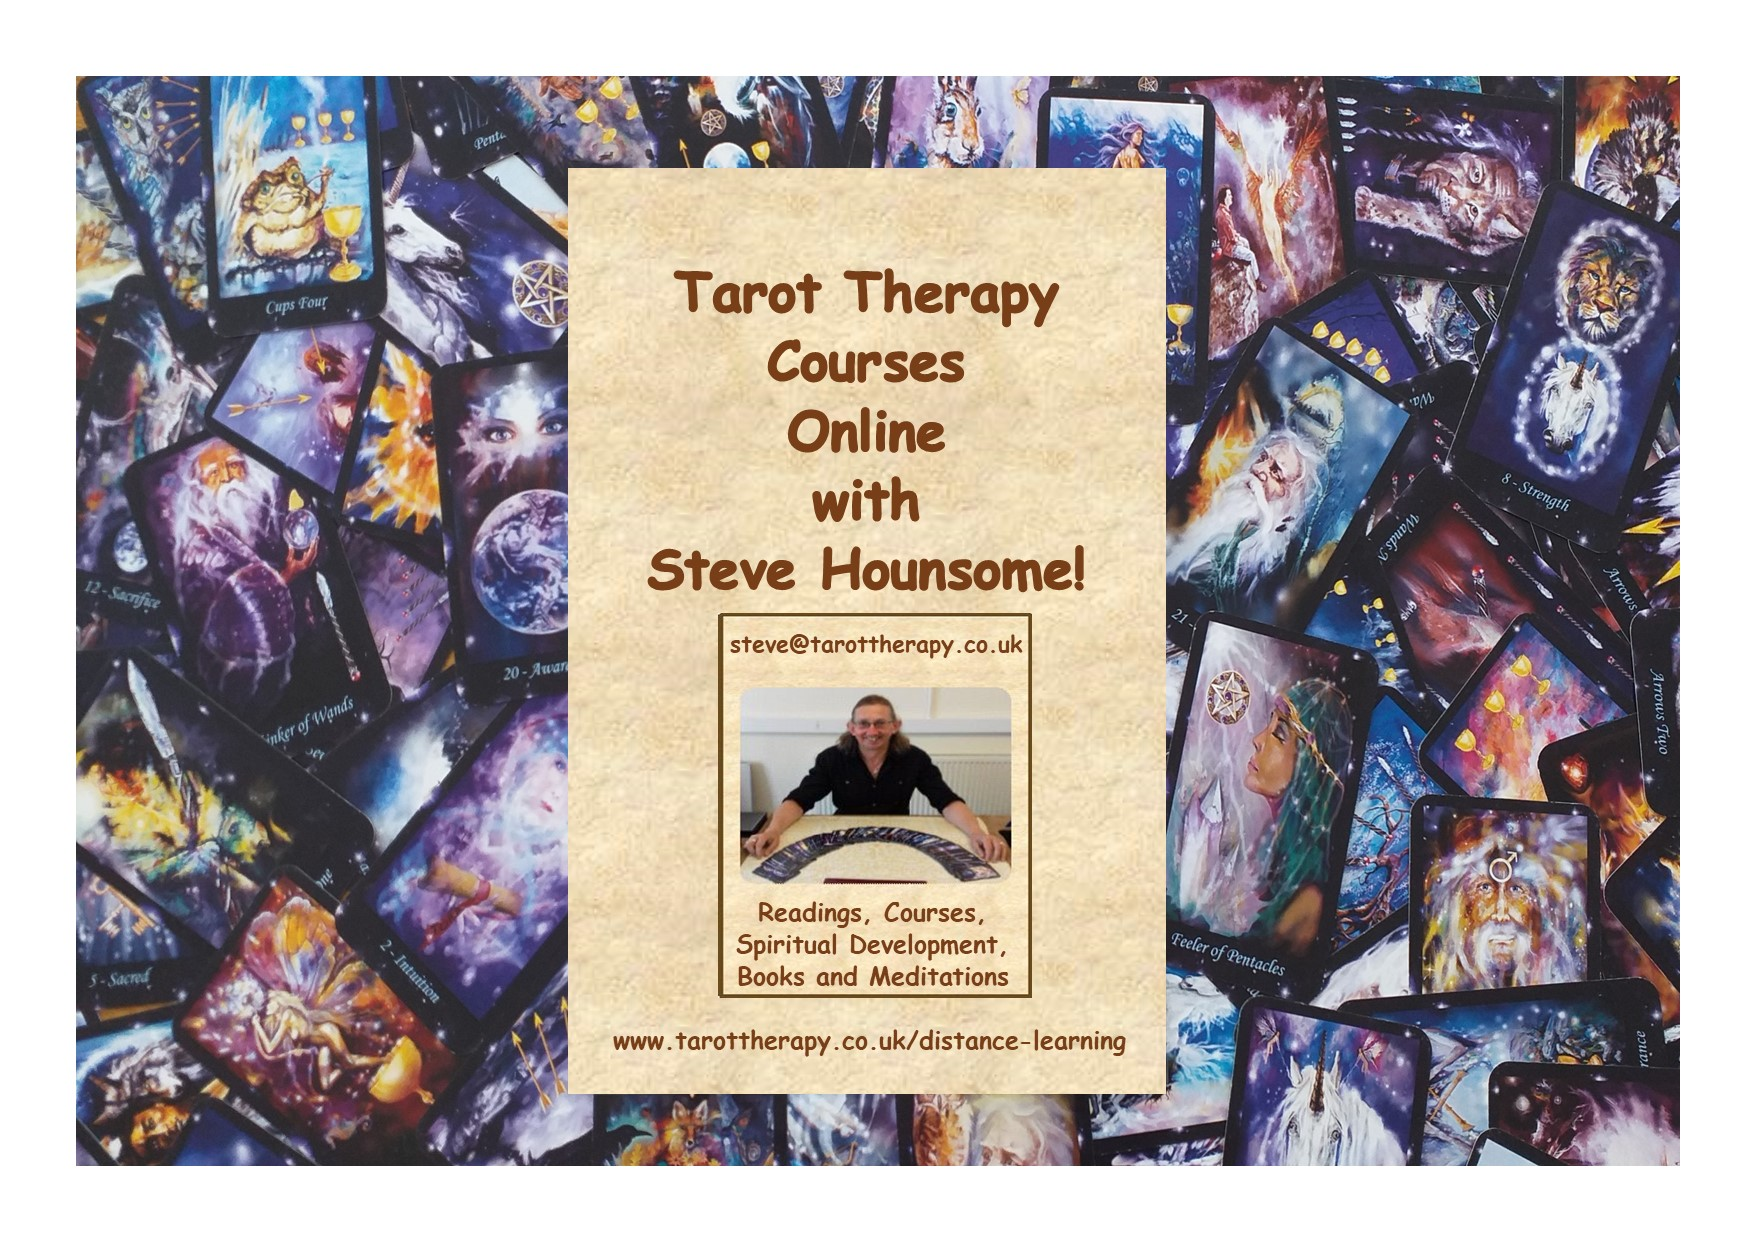 Certificate in Tarot Therapy Online - By Distance Learning with Steve Hounsome!